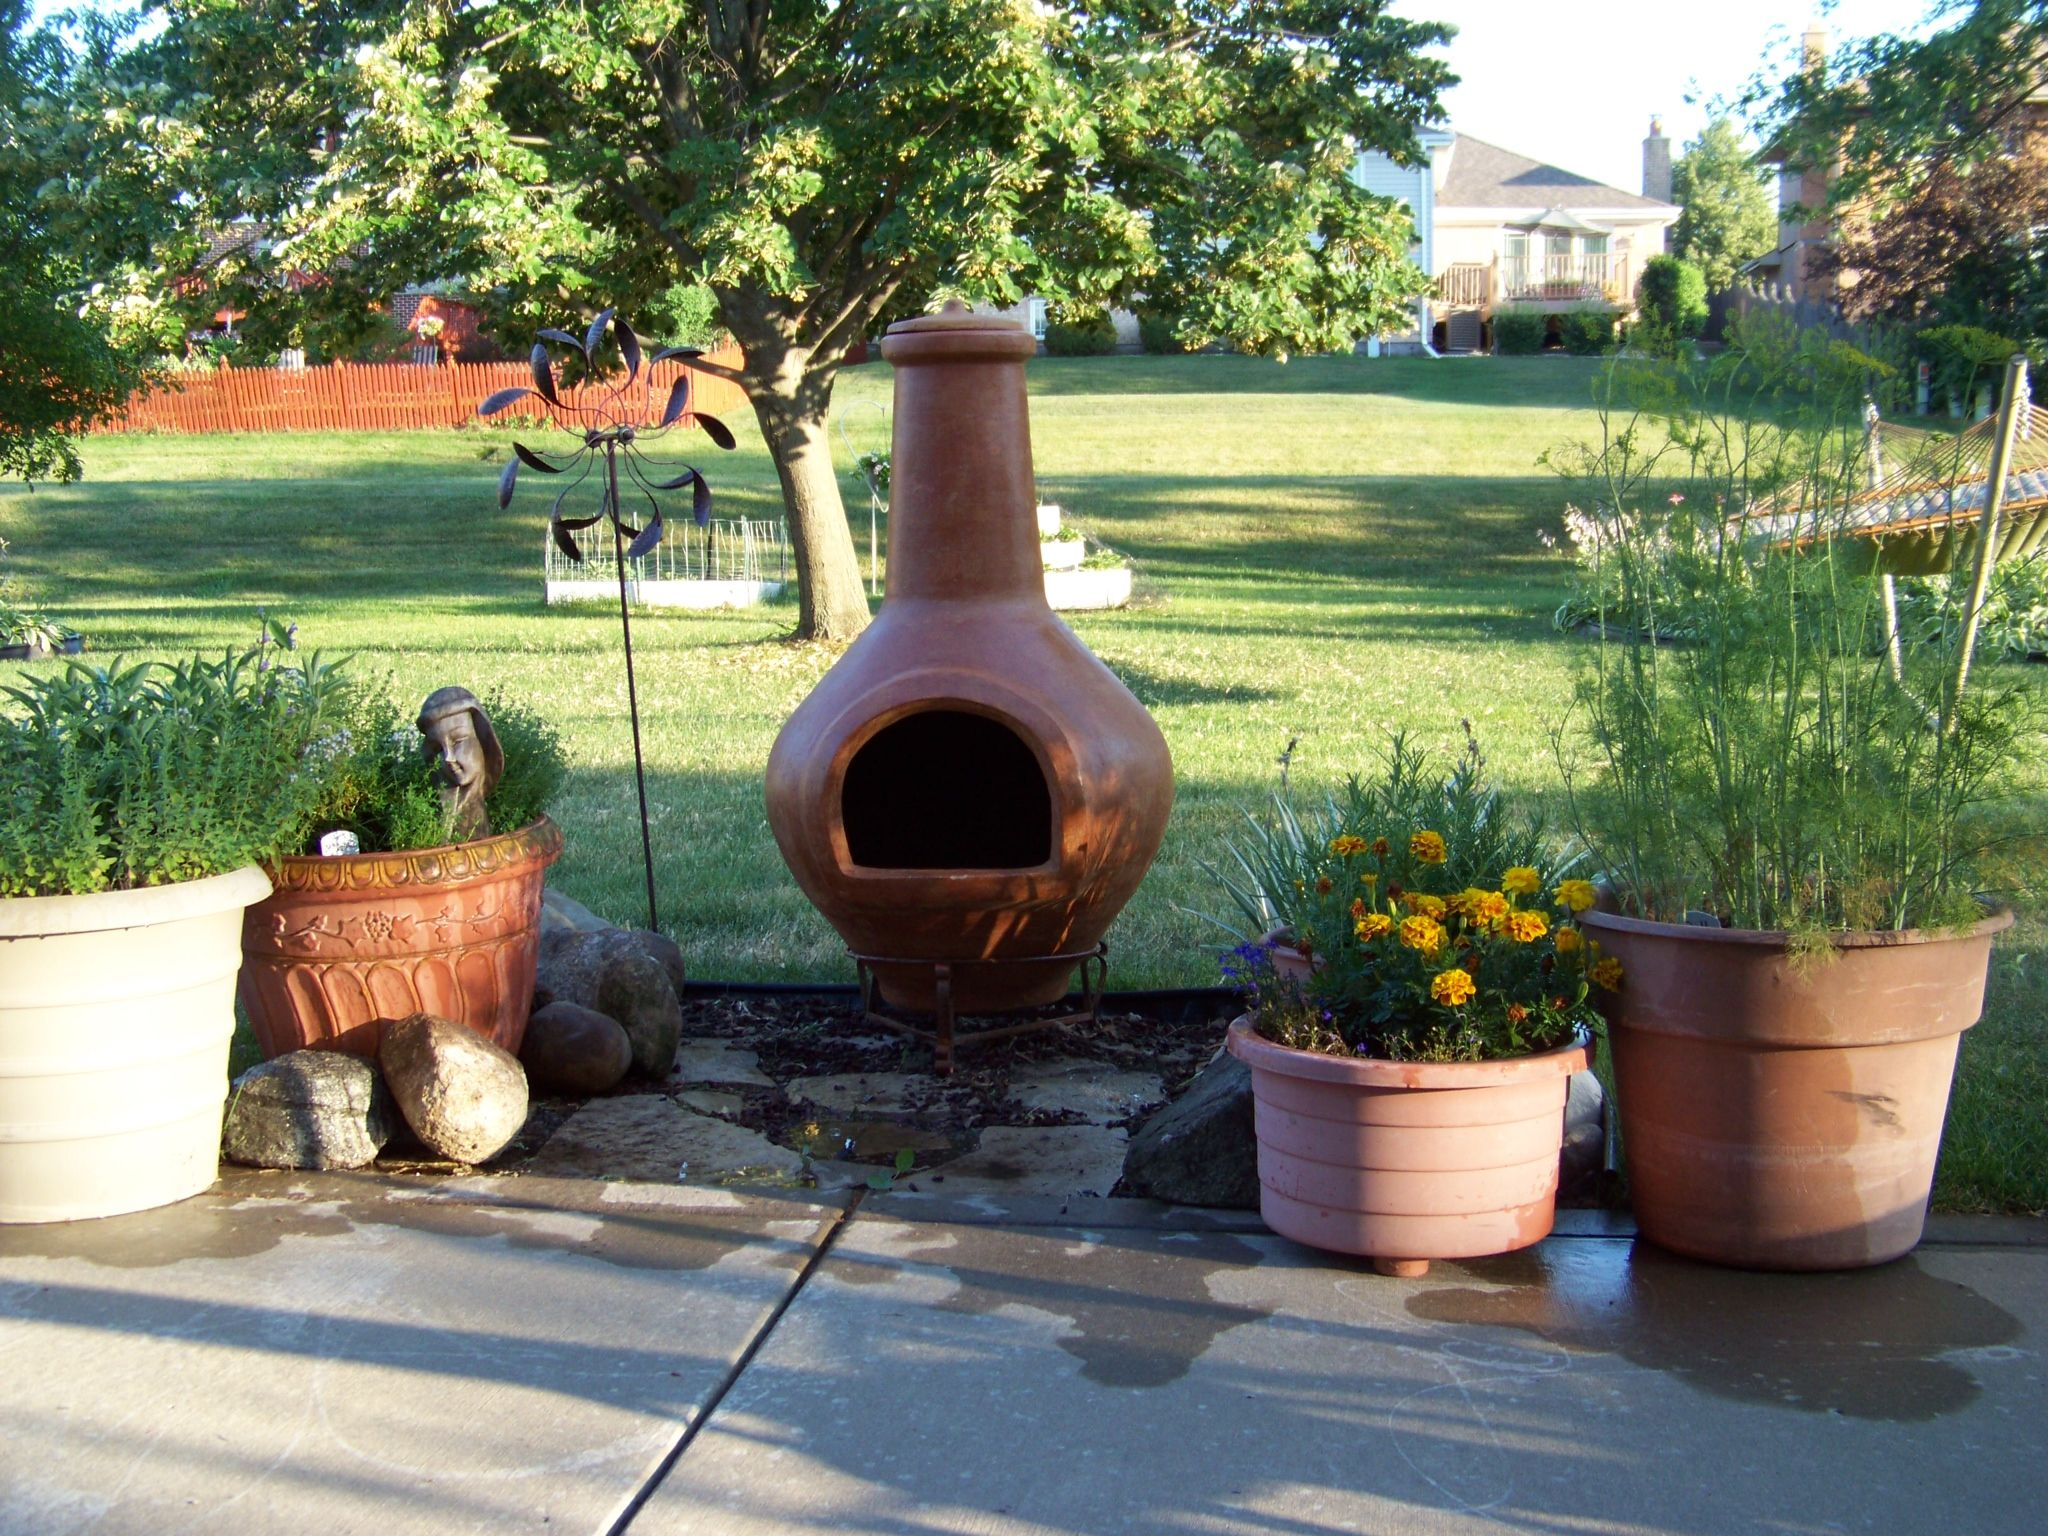 Our new chiminea fire pit | Light My Fire! | Pinterest ... on Backyard Chiminea Ideas id=40517